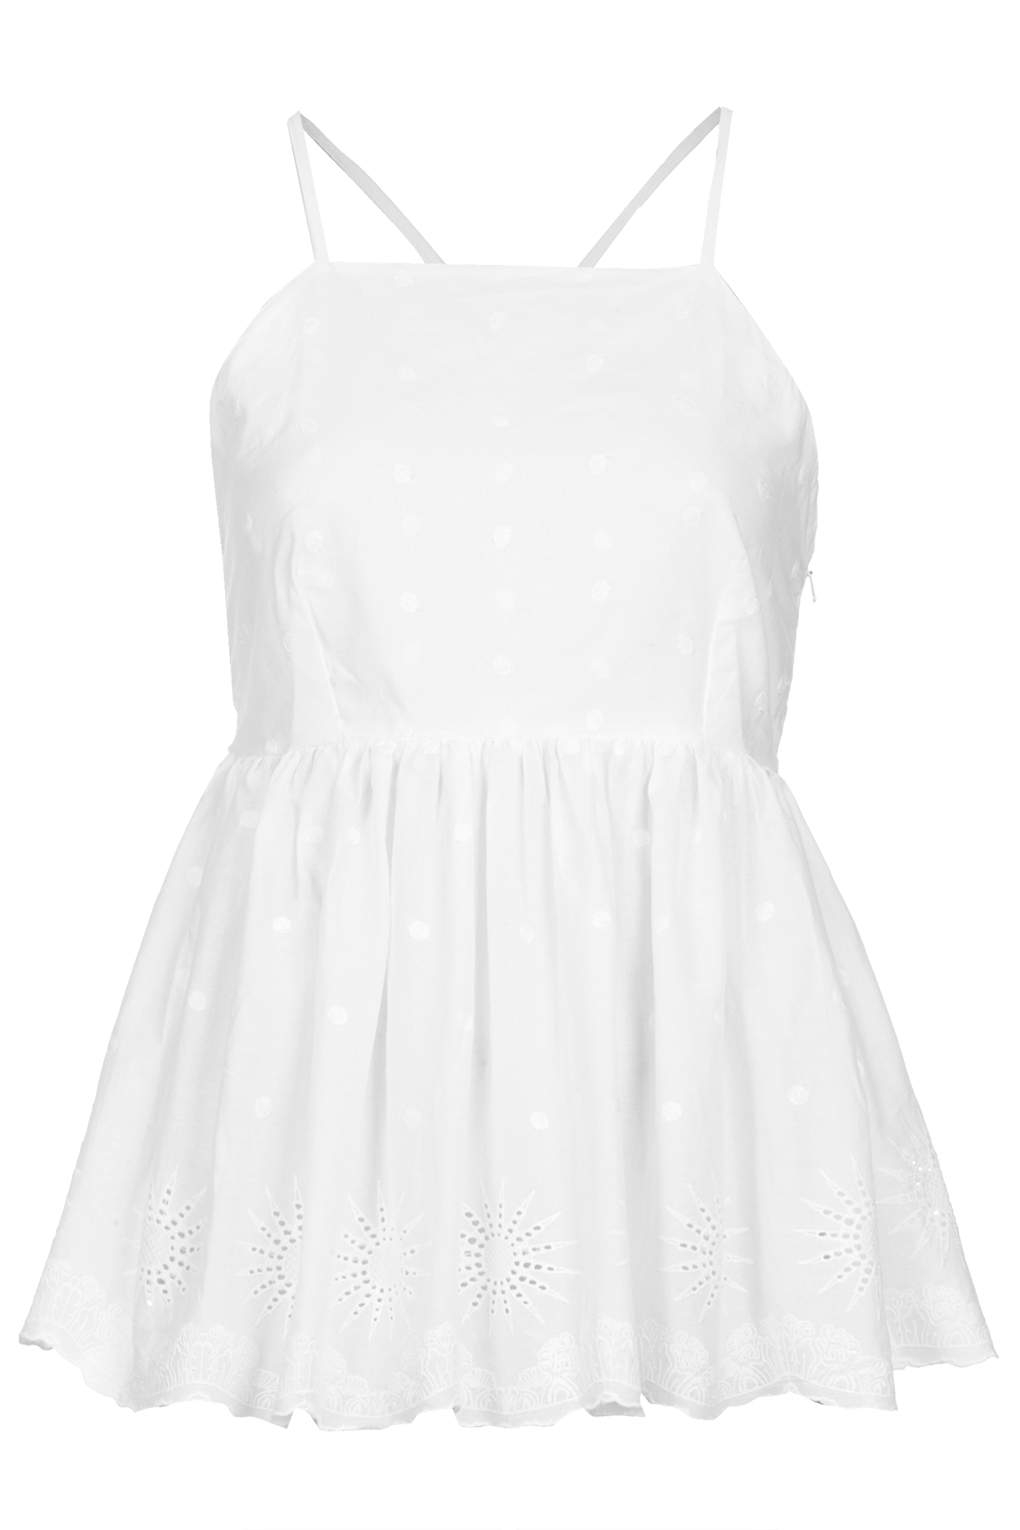 Topshop Womens Embroidered Camisole Top - Largest Supplier ZEgFS